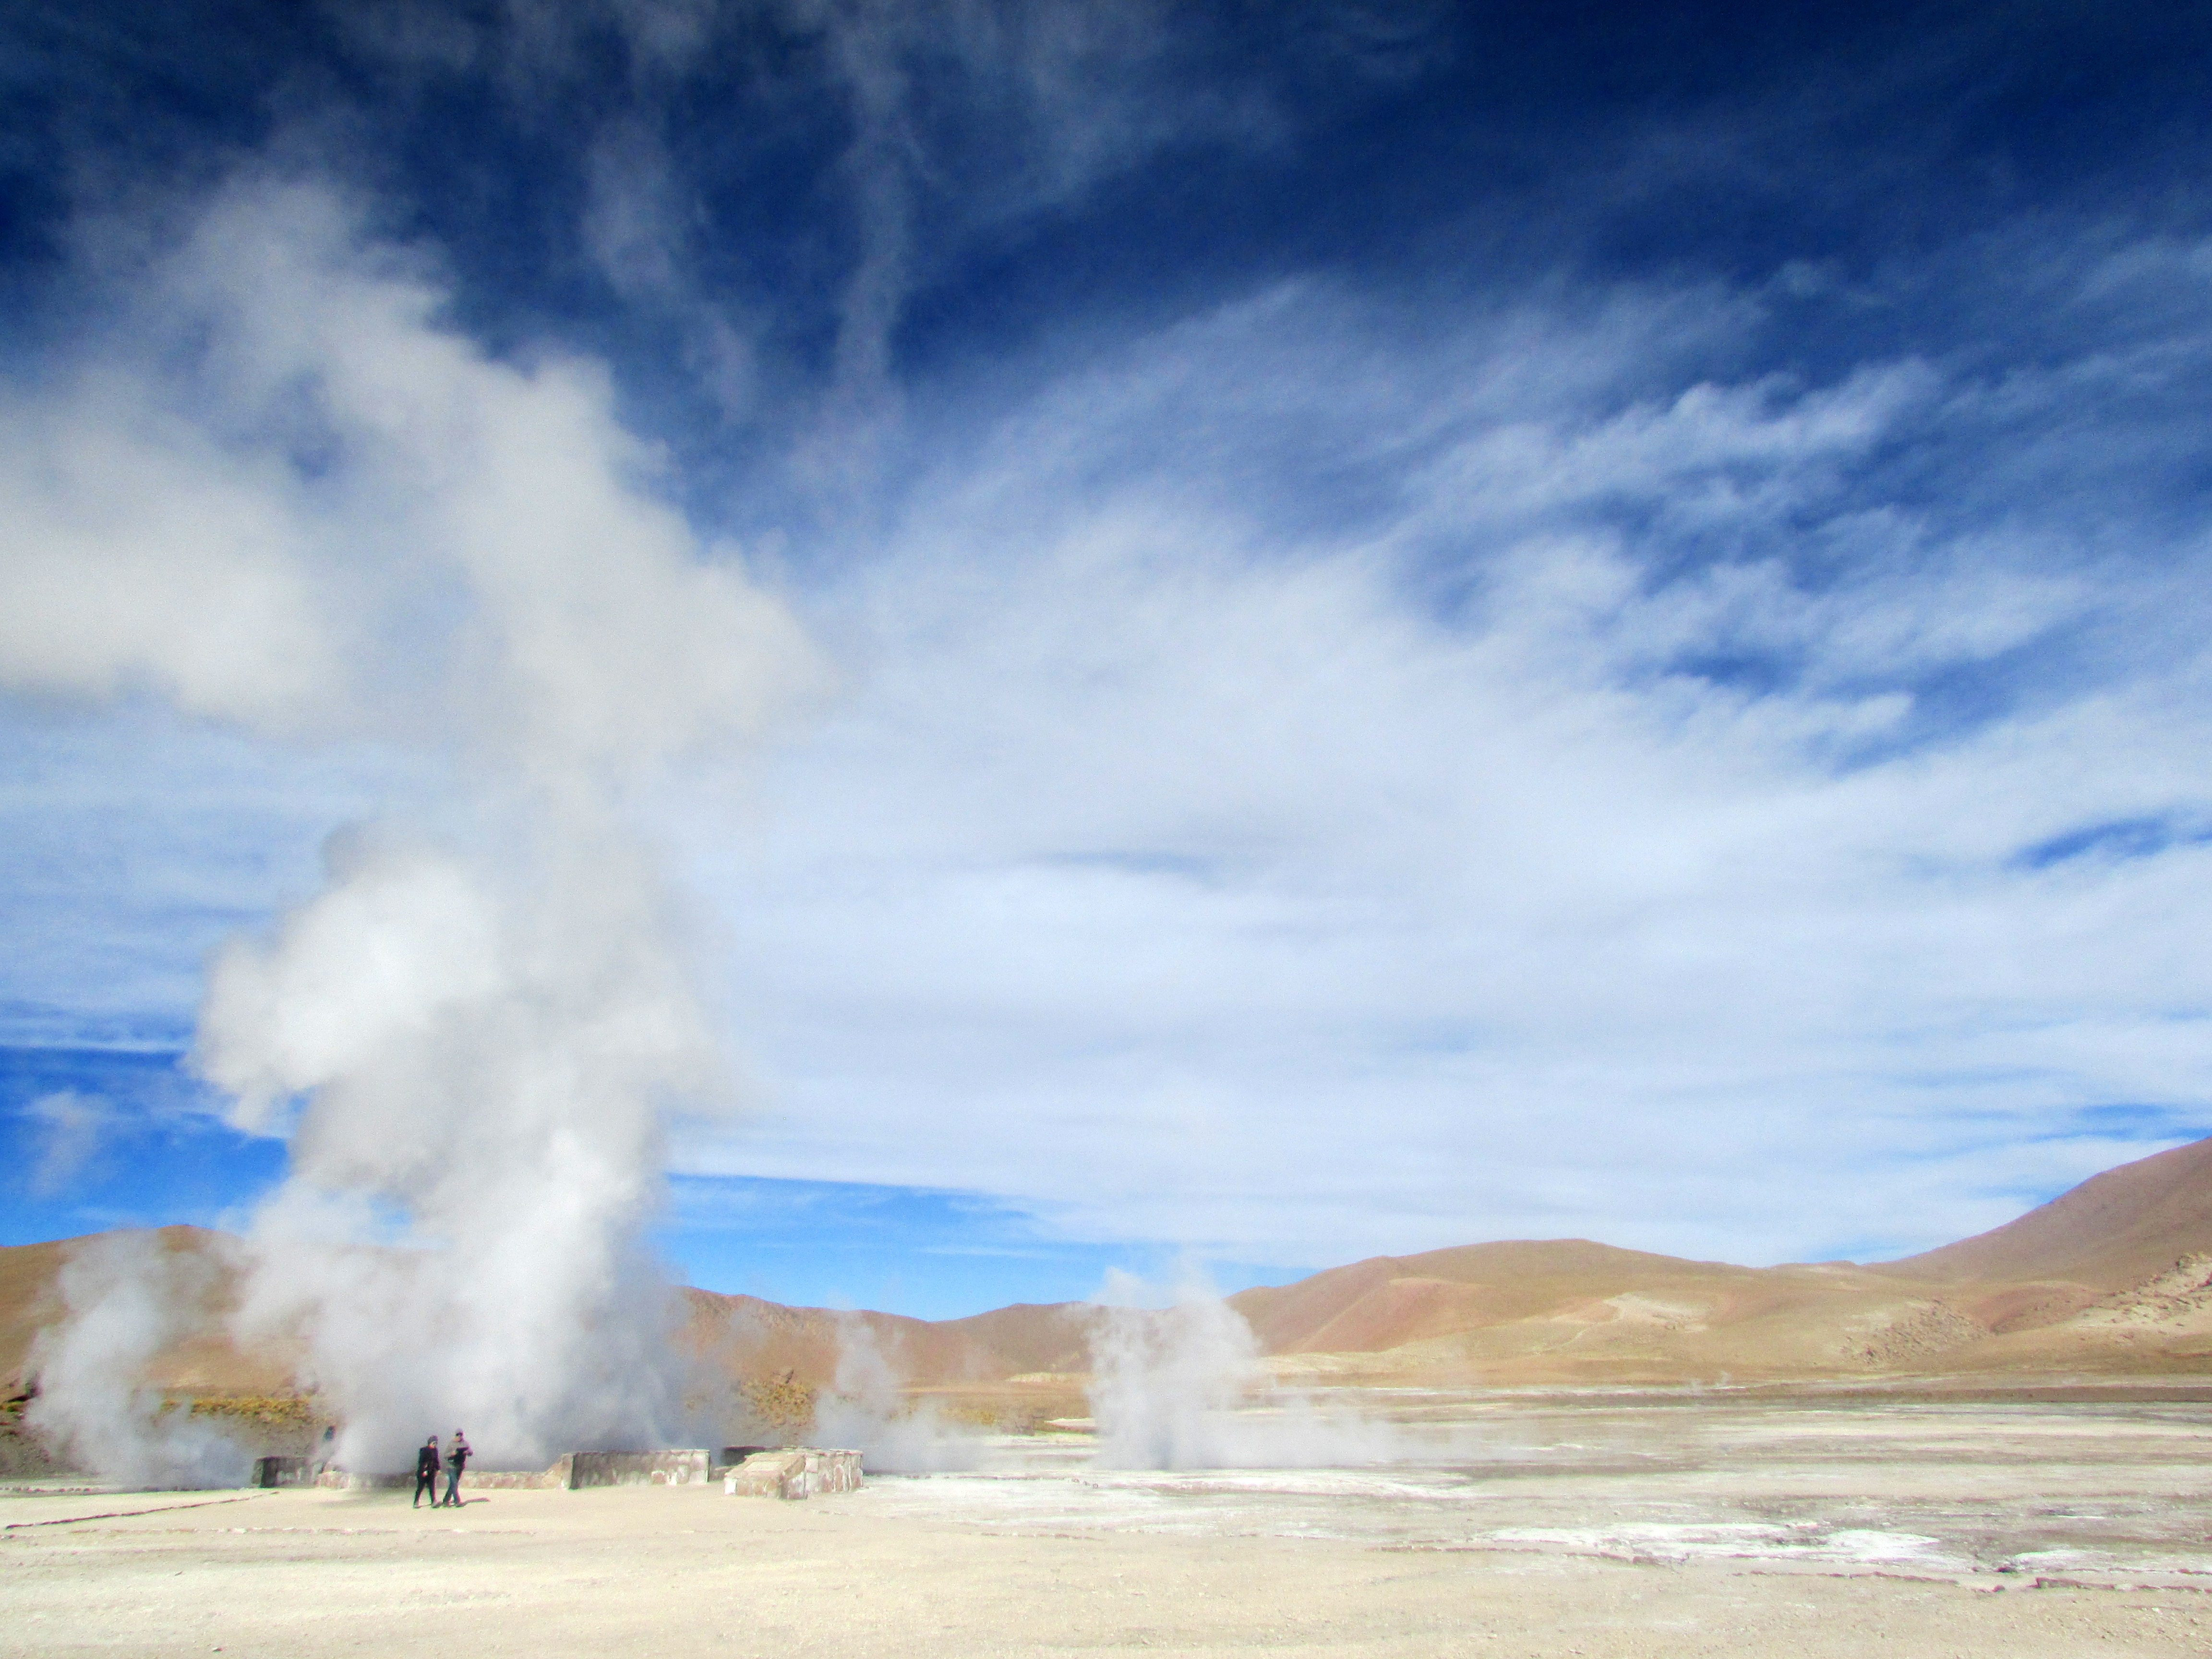 Geysers del Tatio - Photo © By Javivi moaxaja - Own work, CC BY-SA 3.0, https://commons.wikimedia.org/w/index.php?curid=32163250